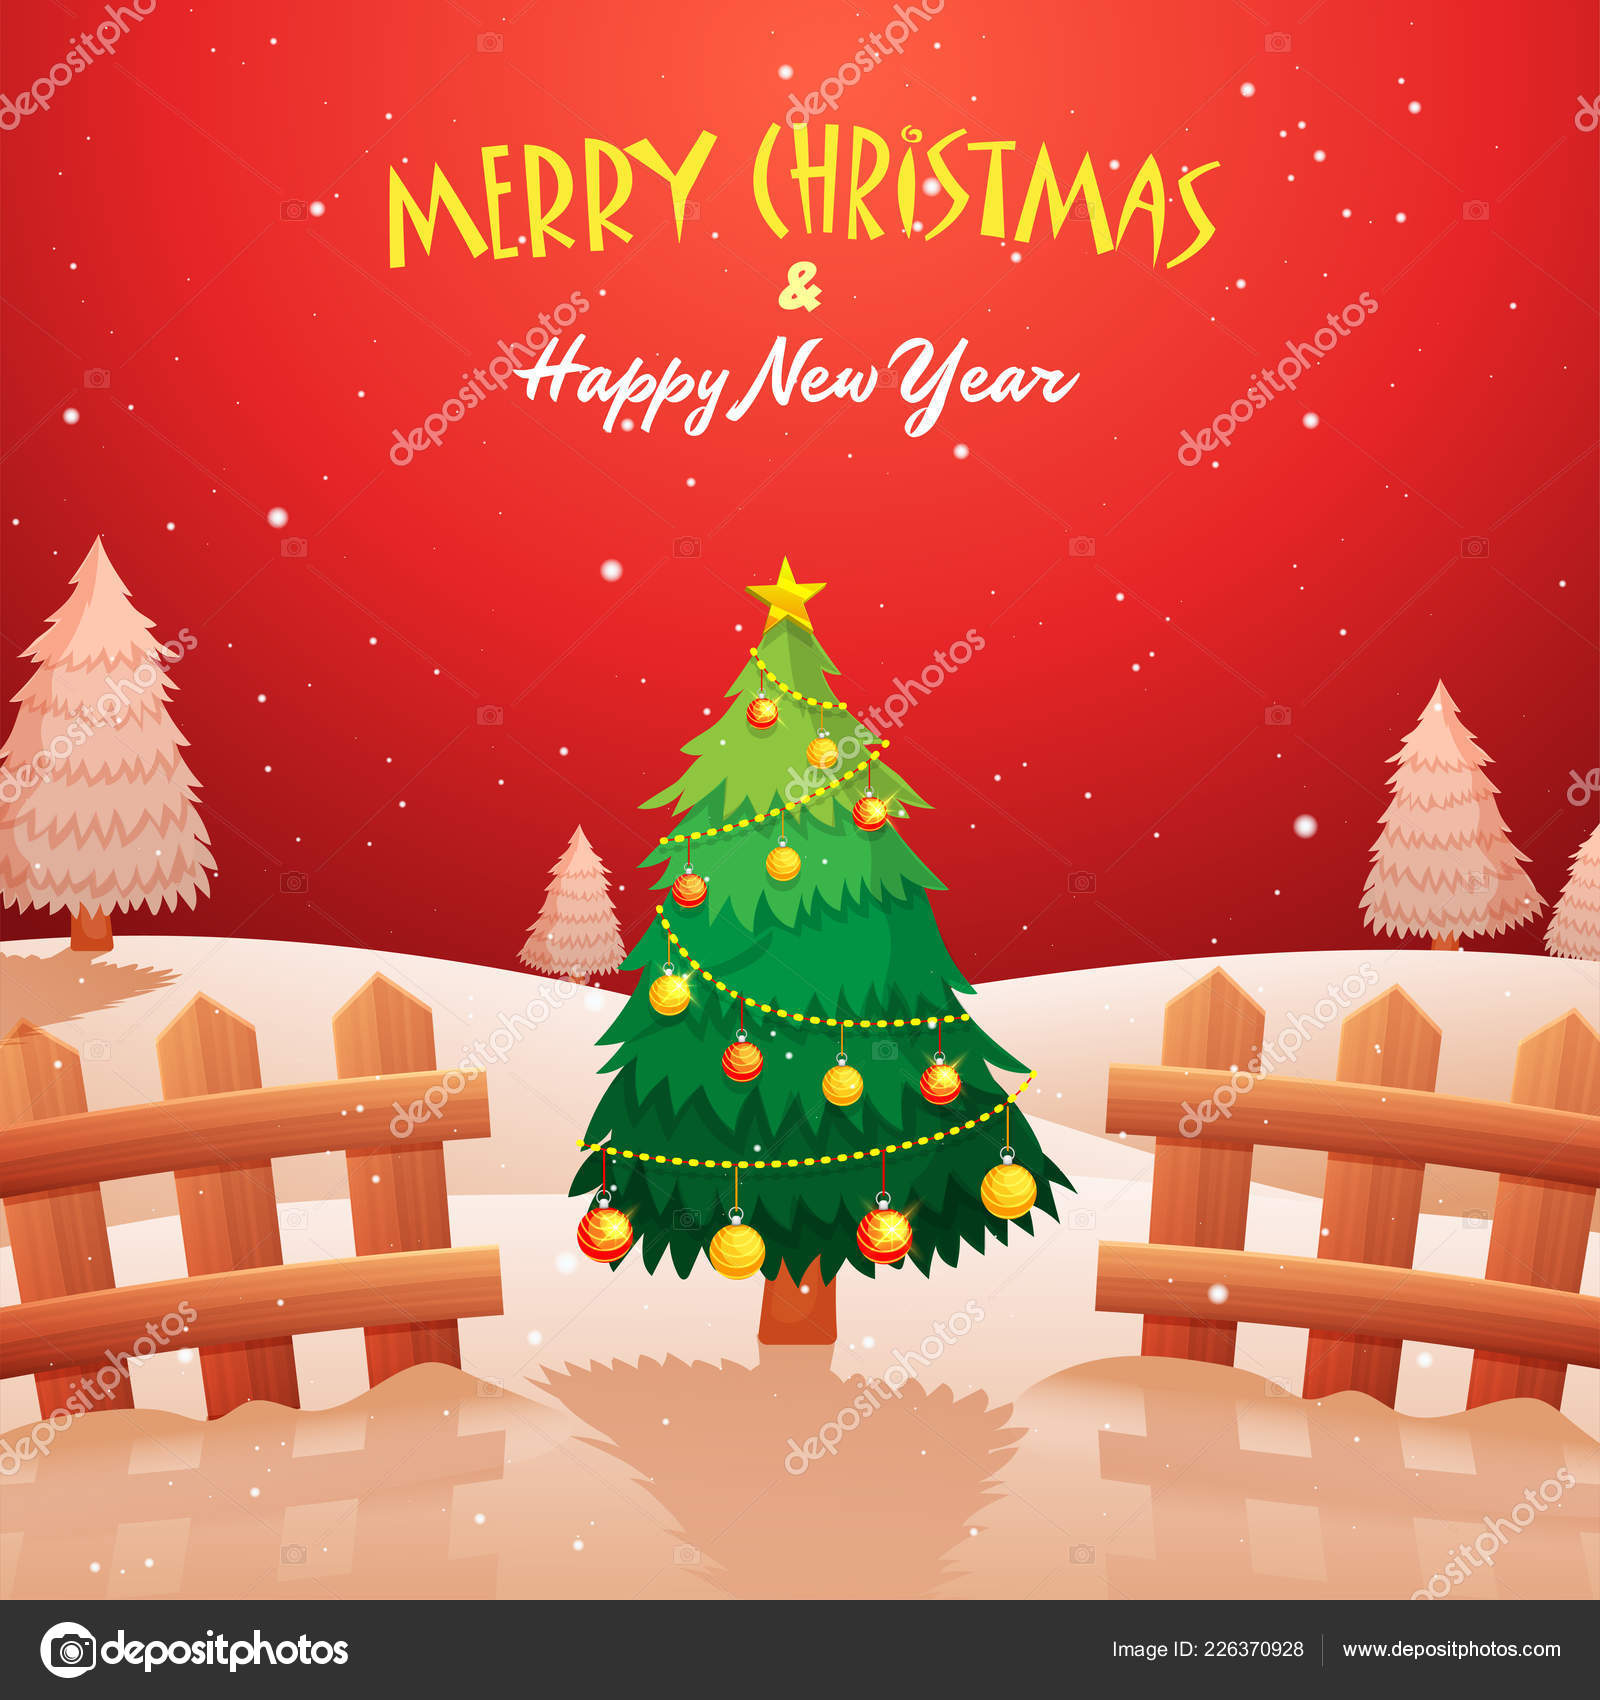 Merry Christmas Happy New Year Celebration Greeting Card Design ...